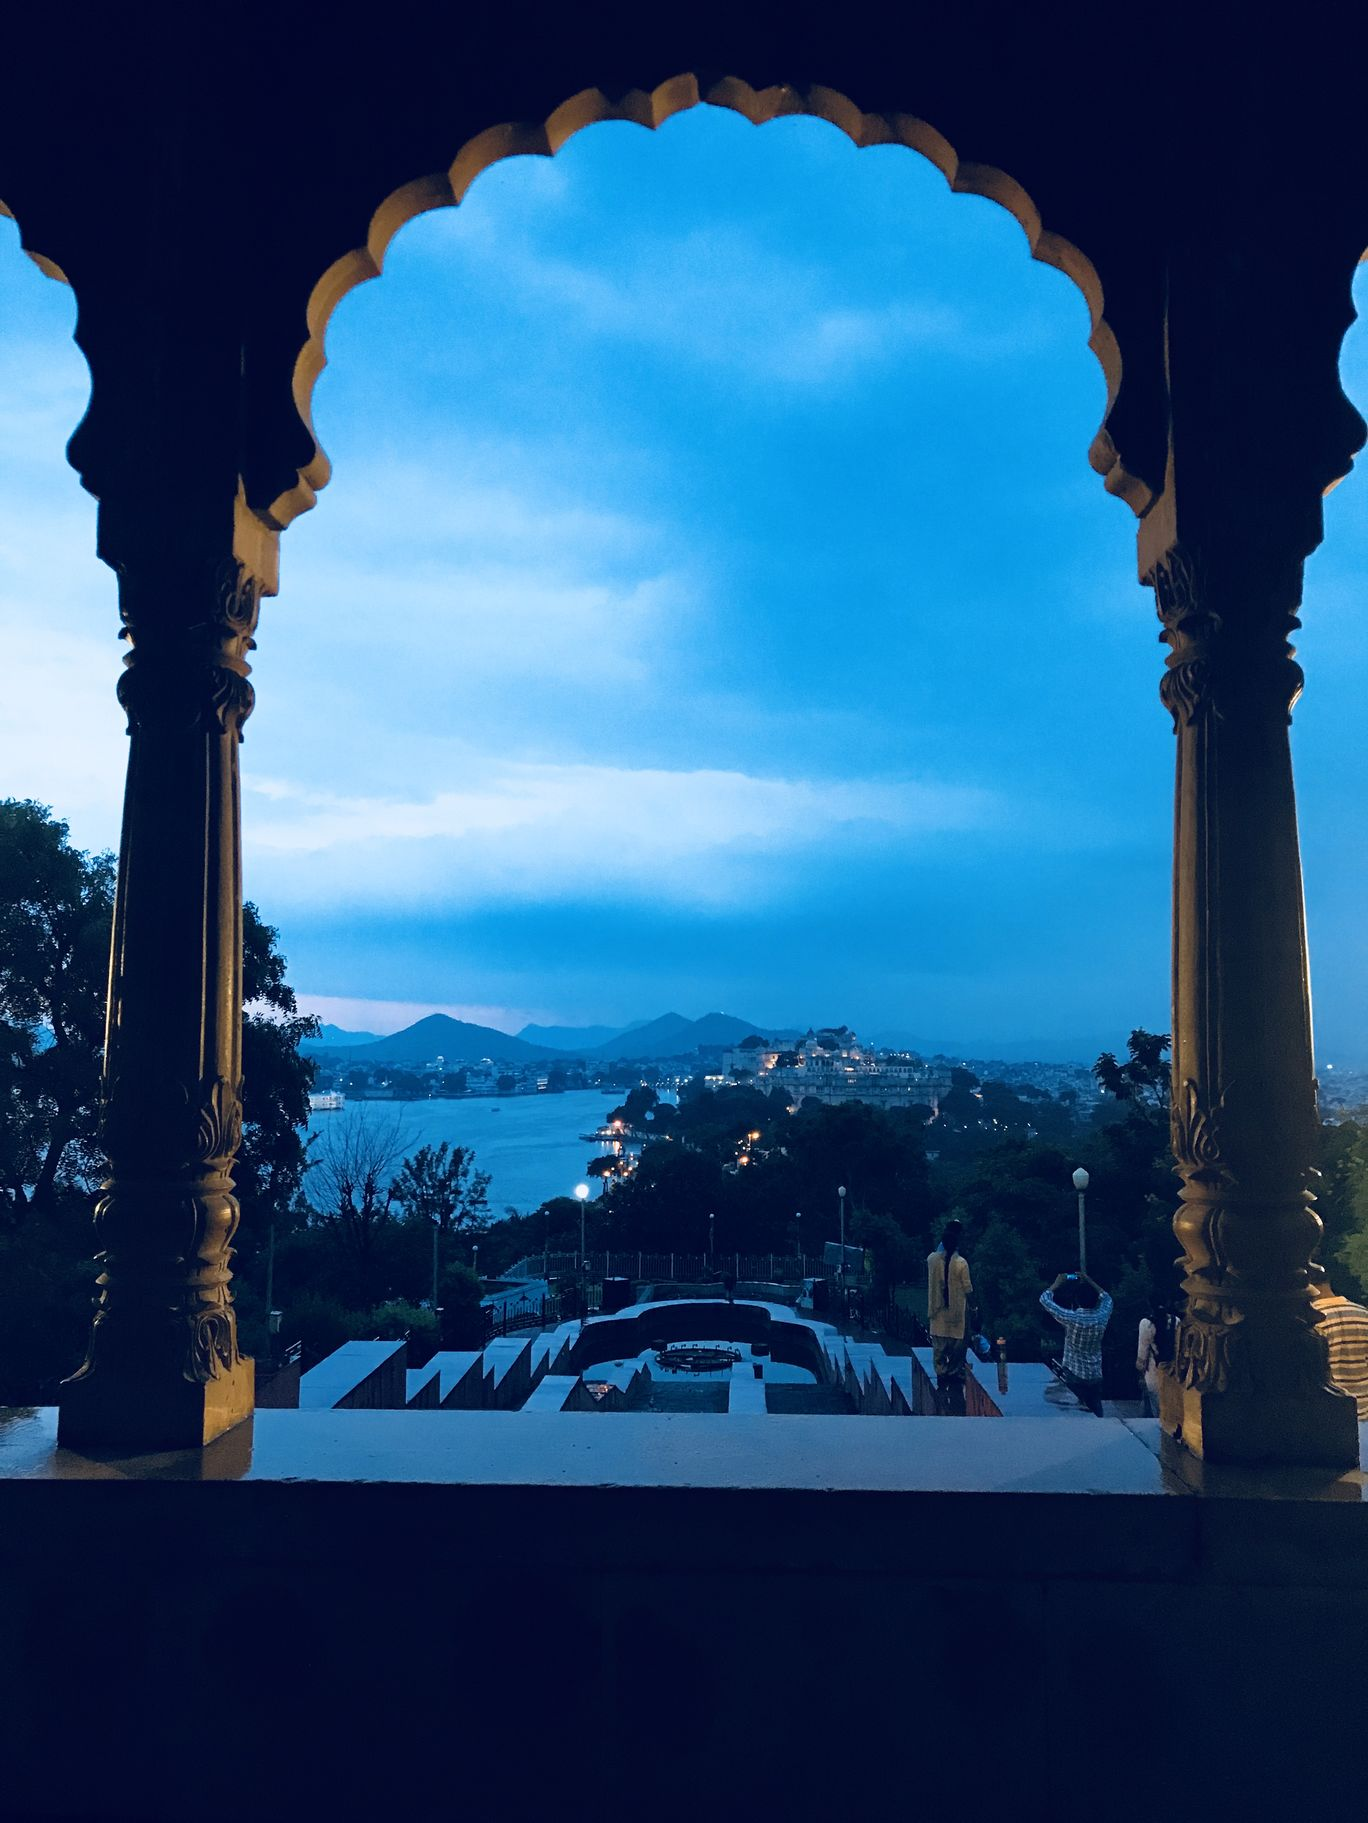 Photo of Lake Pichola By Apoorva Choudhary